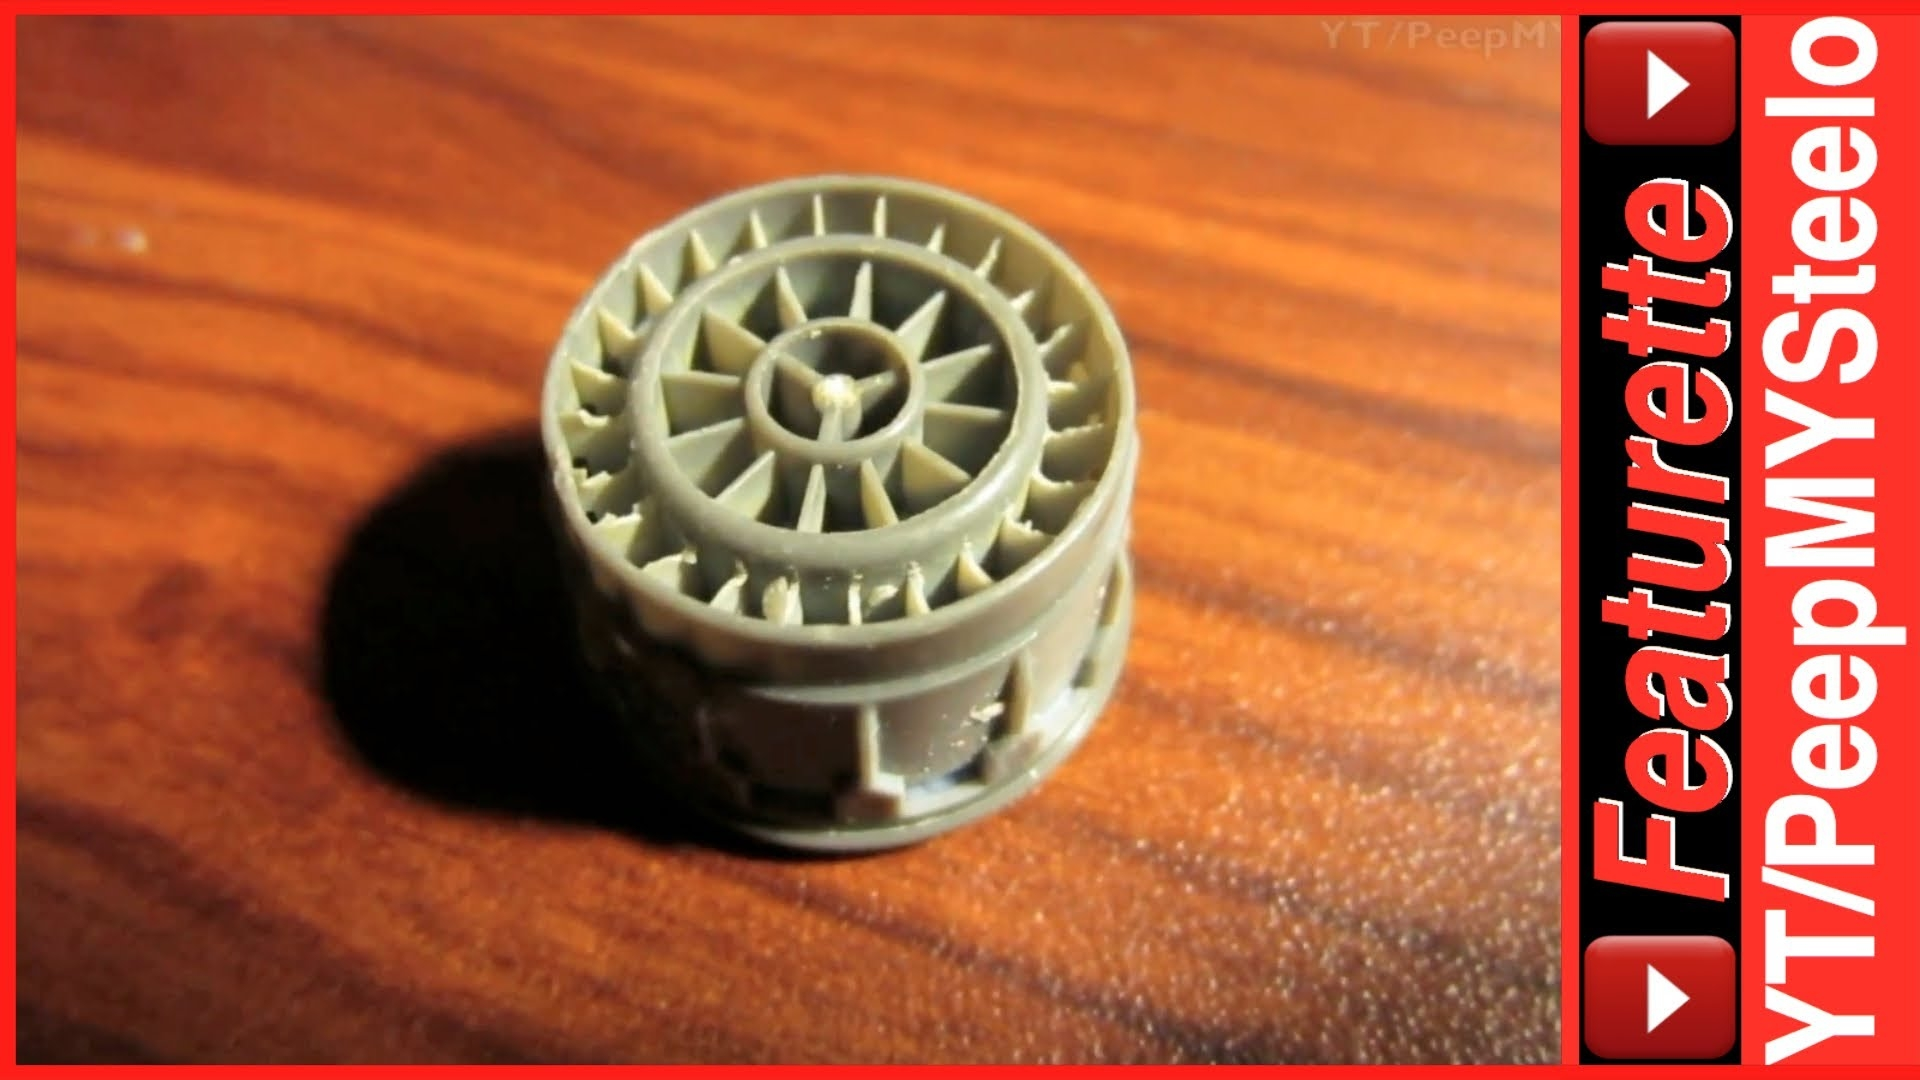 Ideas, faucet aerator replacement for kitchen bathroom sink assembly with regard to dimensions 1920 x 1080  .